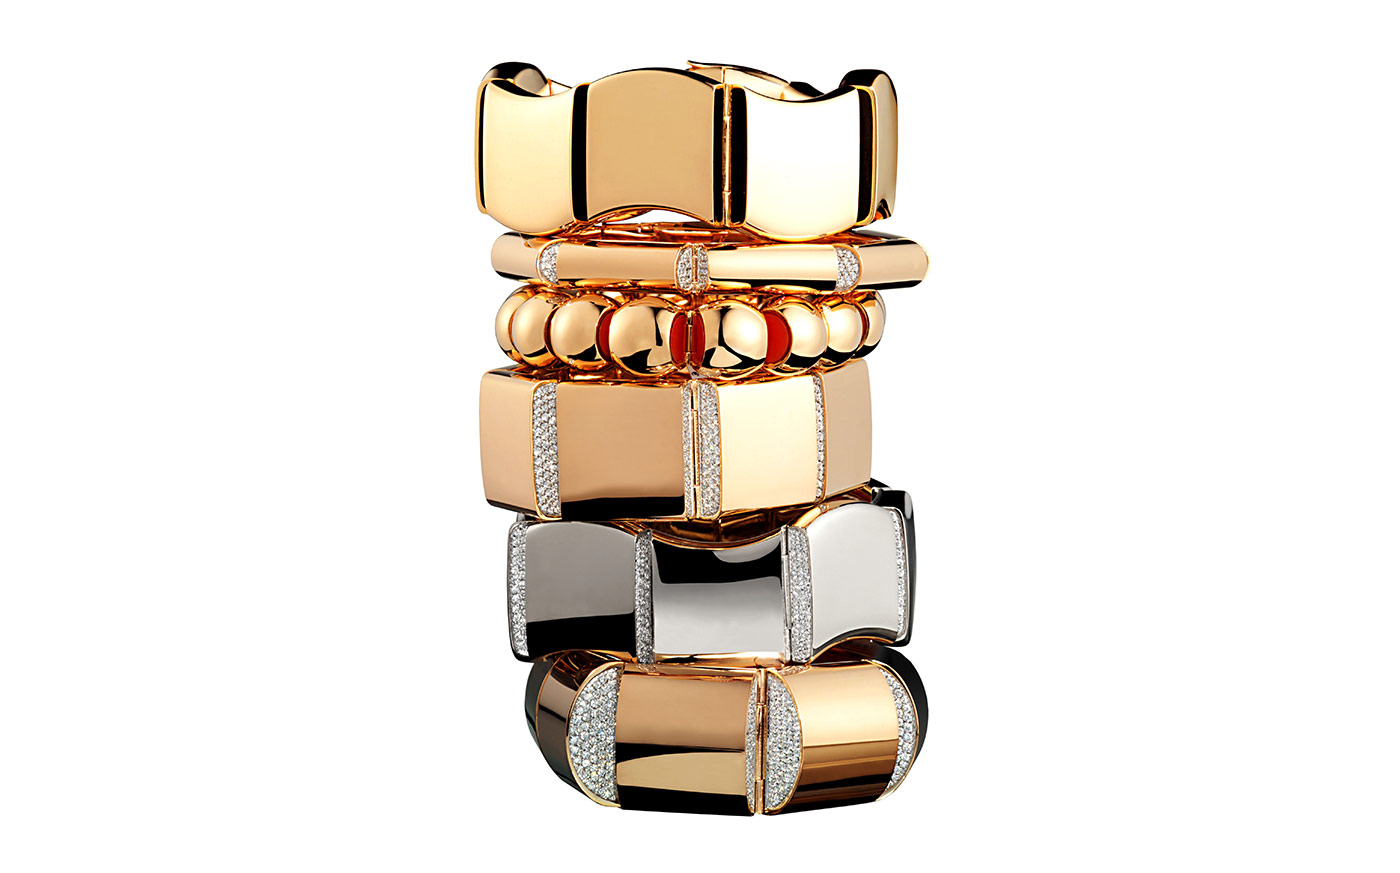 Vhernier 'Sorpresa' bangles in yellow gold with diamonds